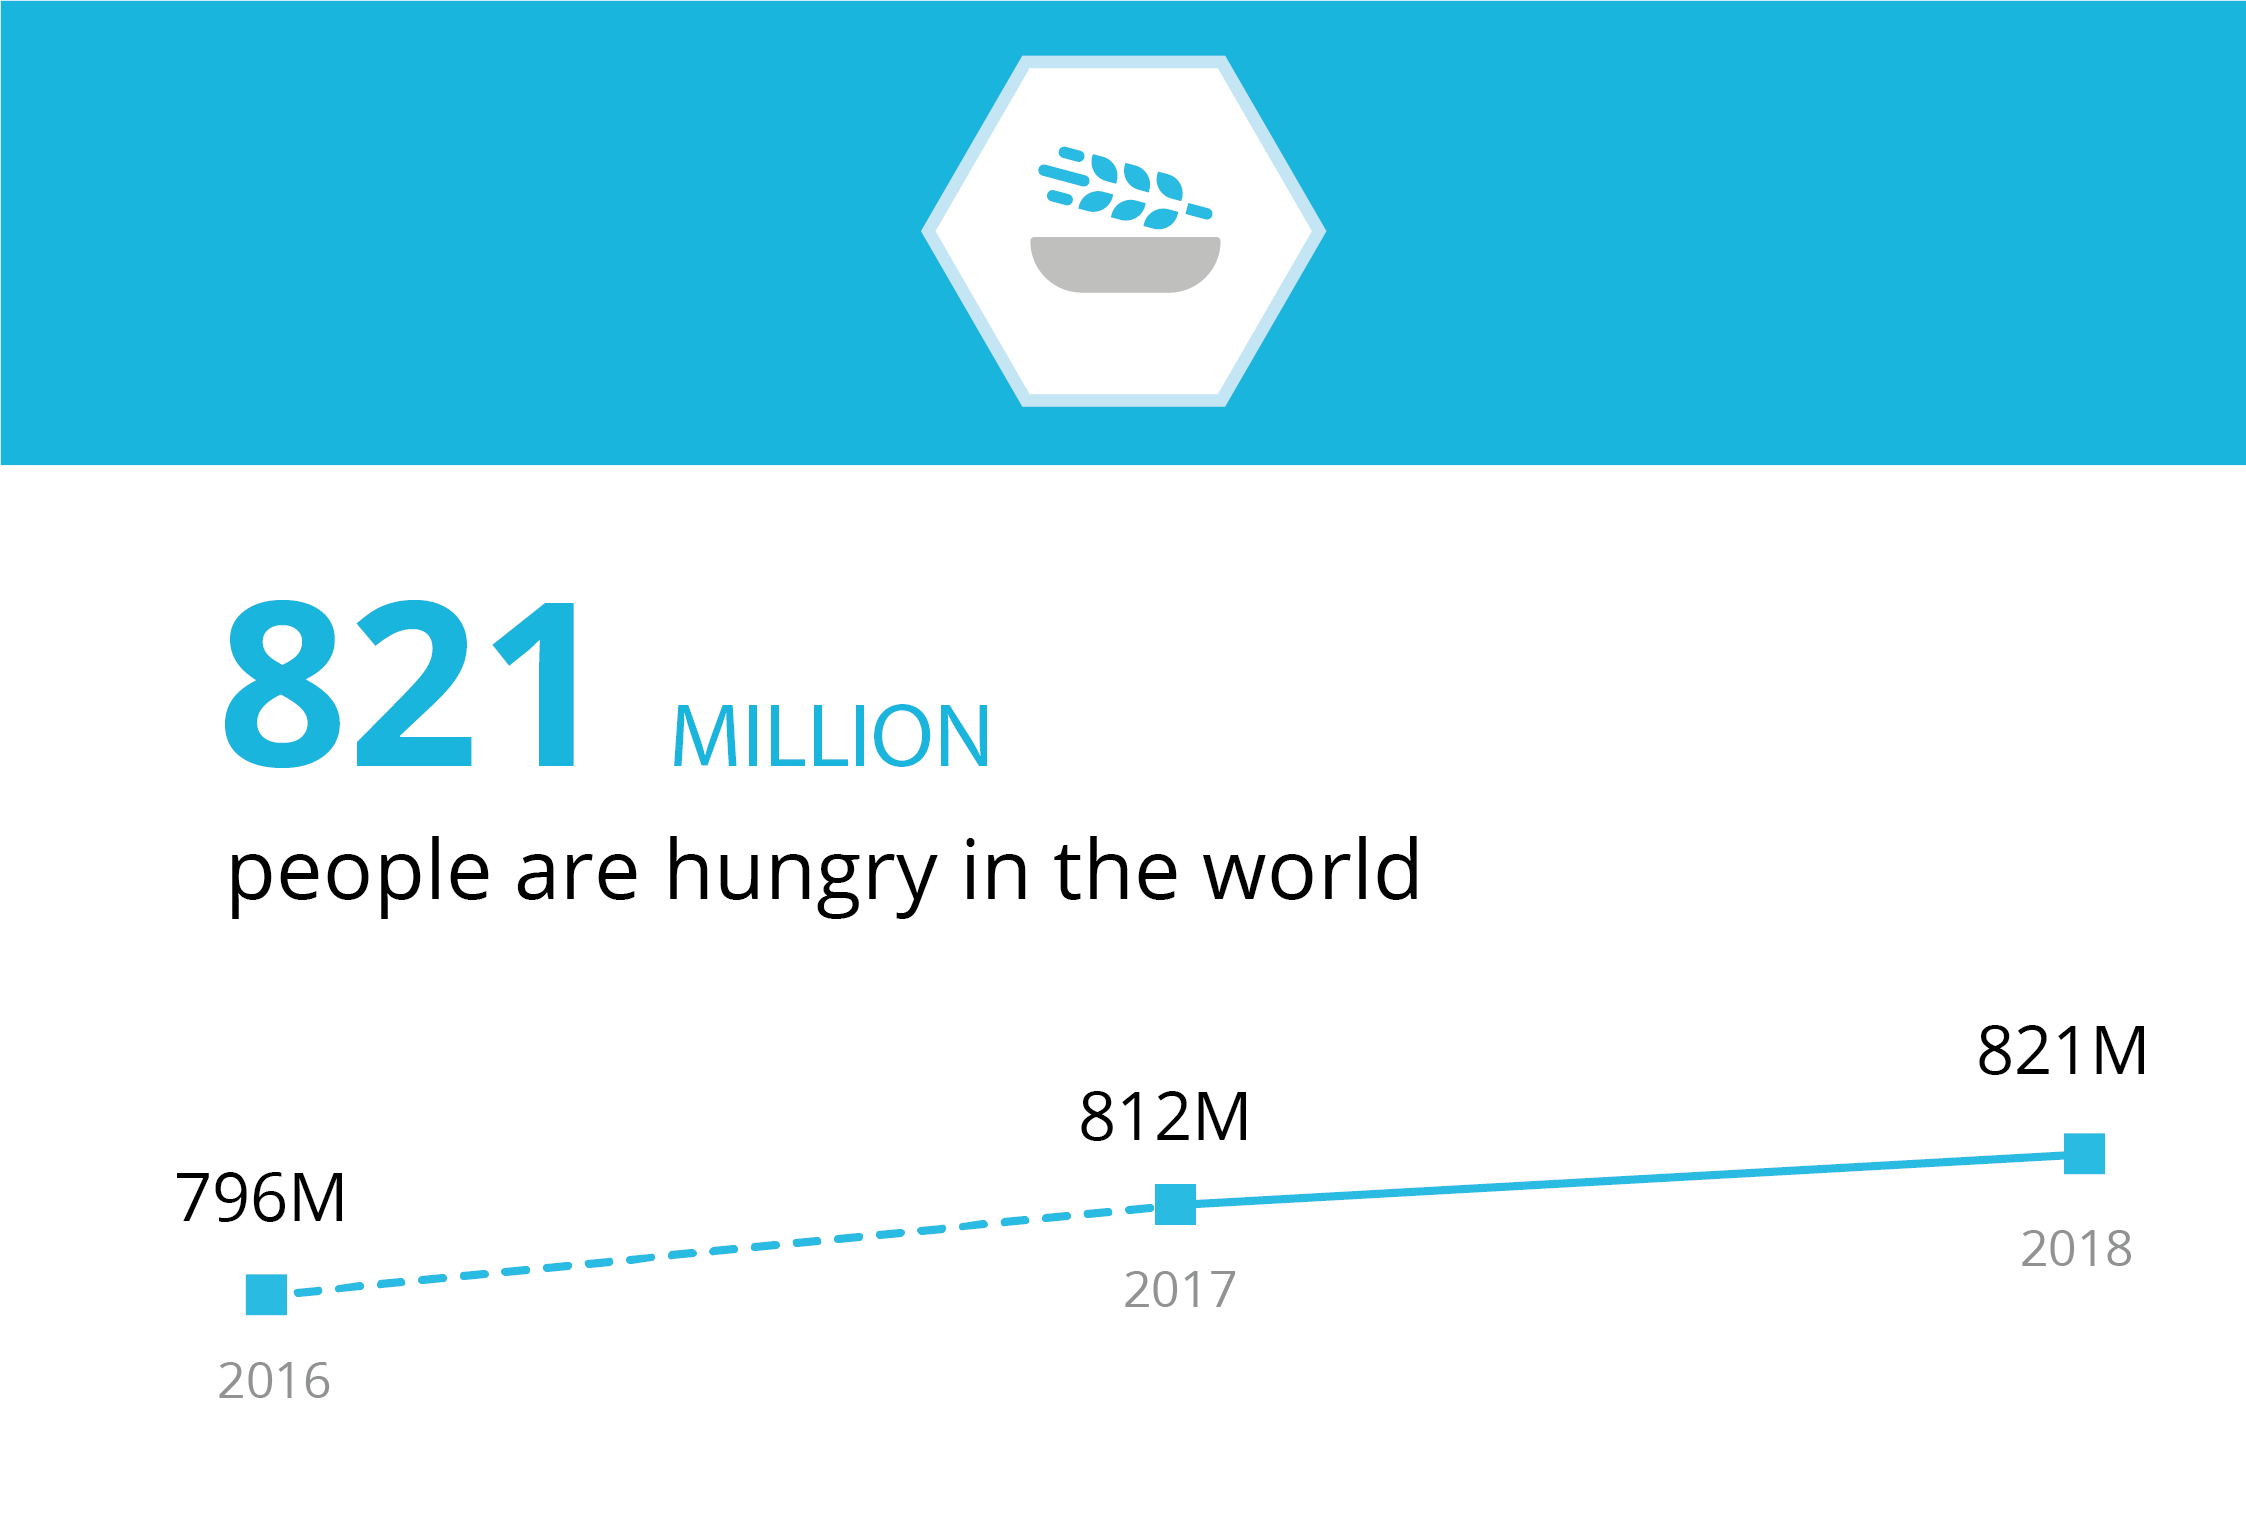 821 million people are hungry in the world